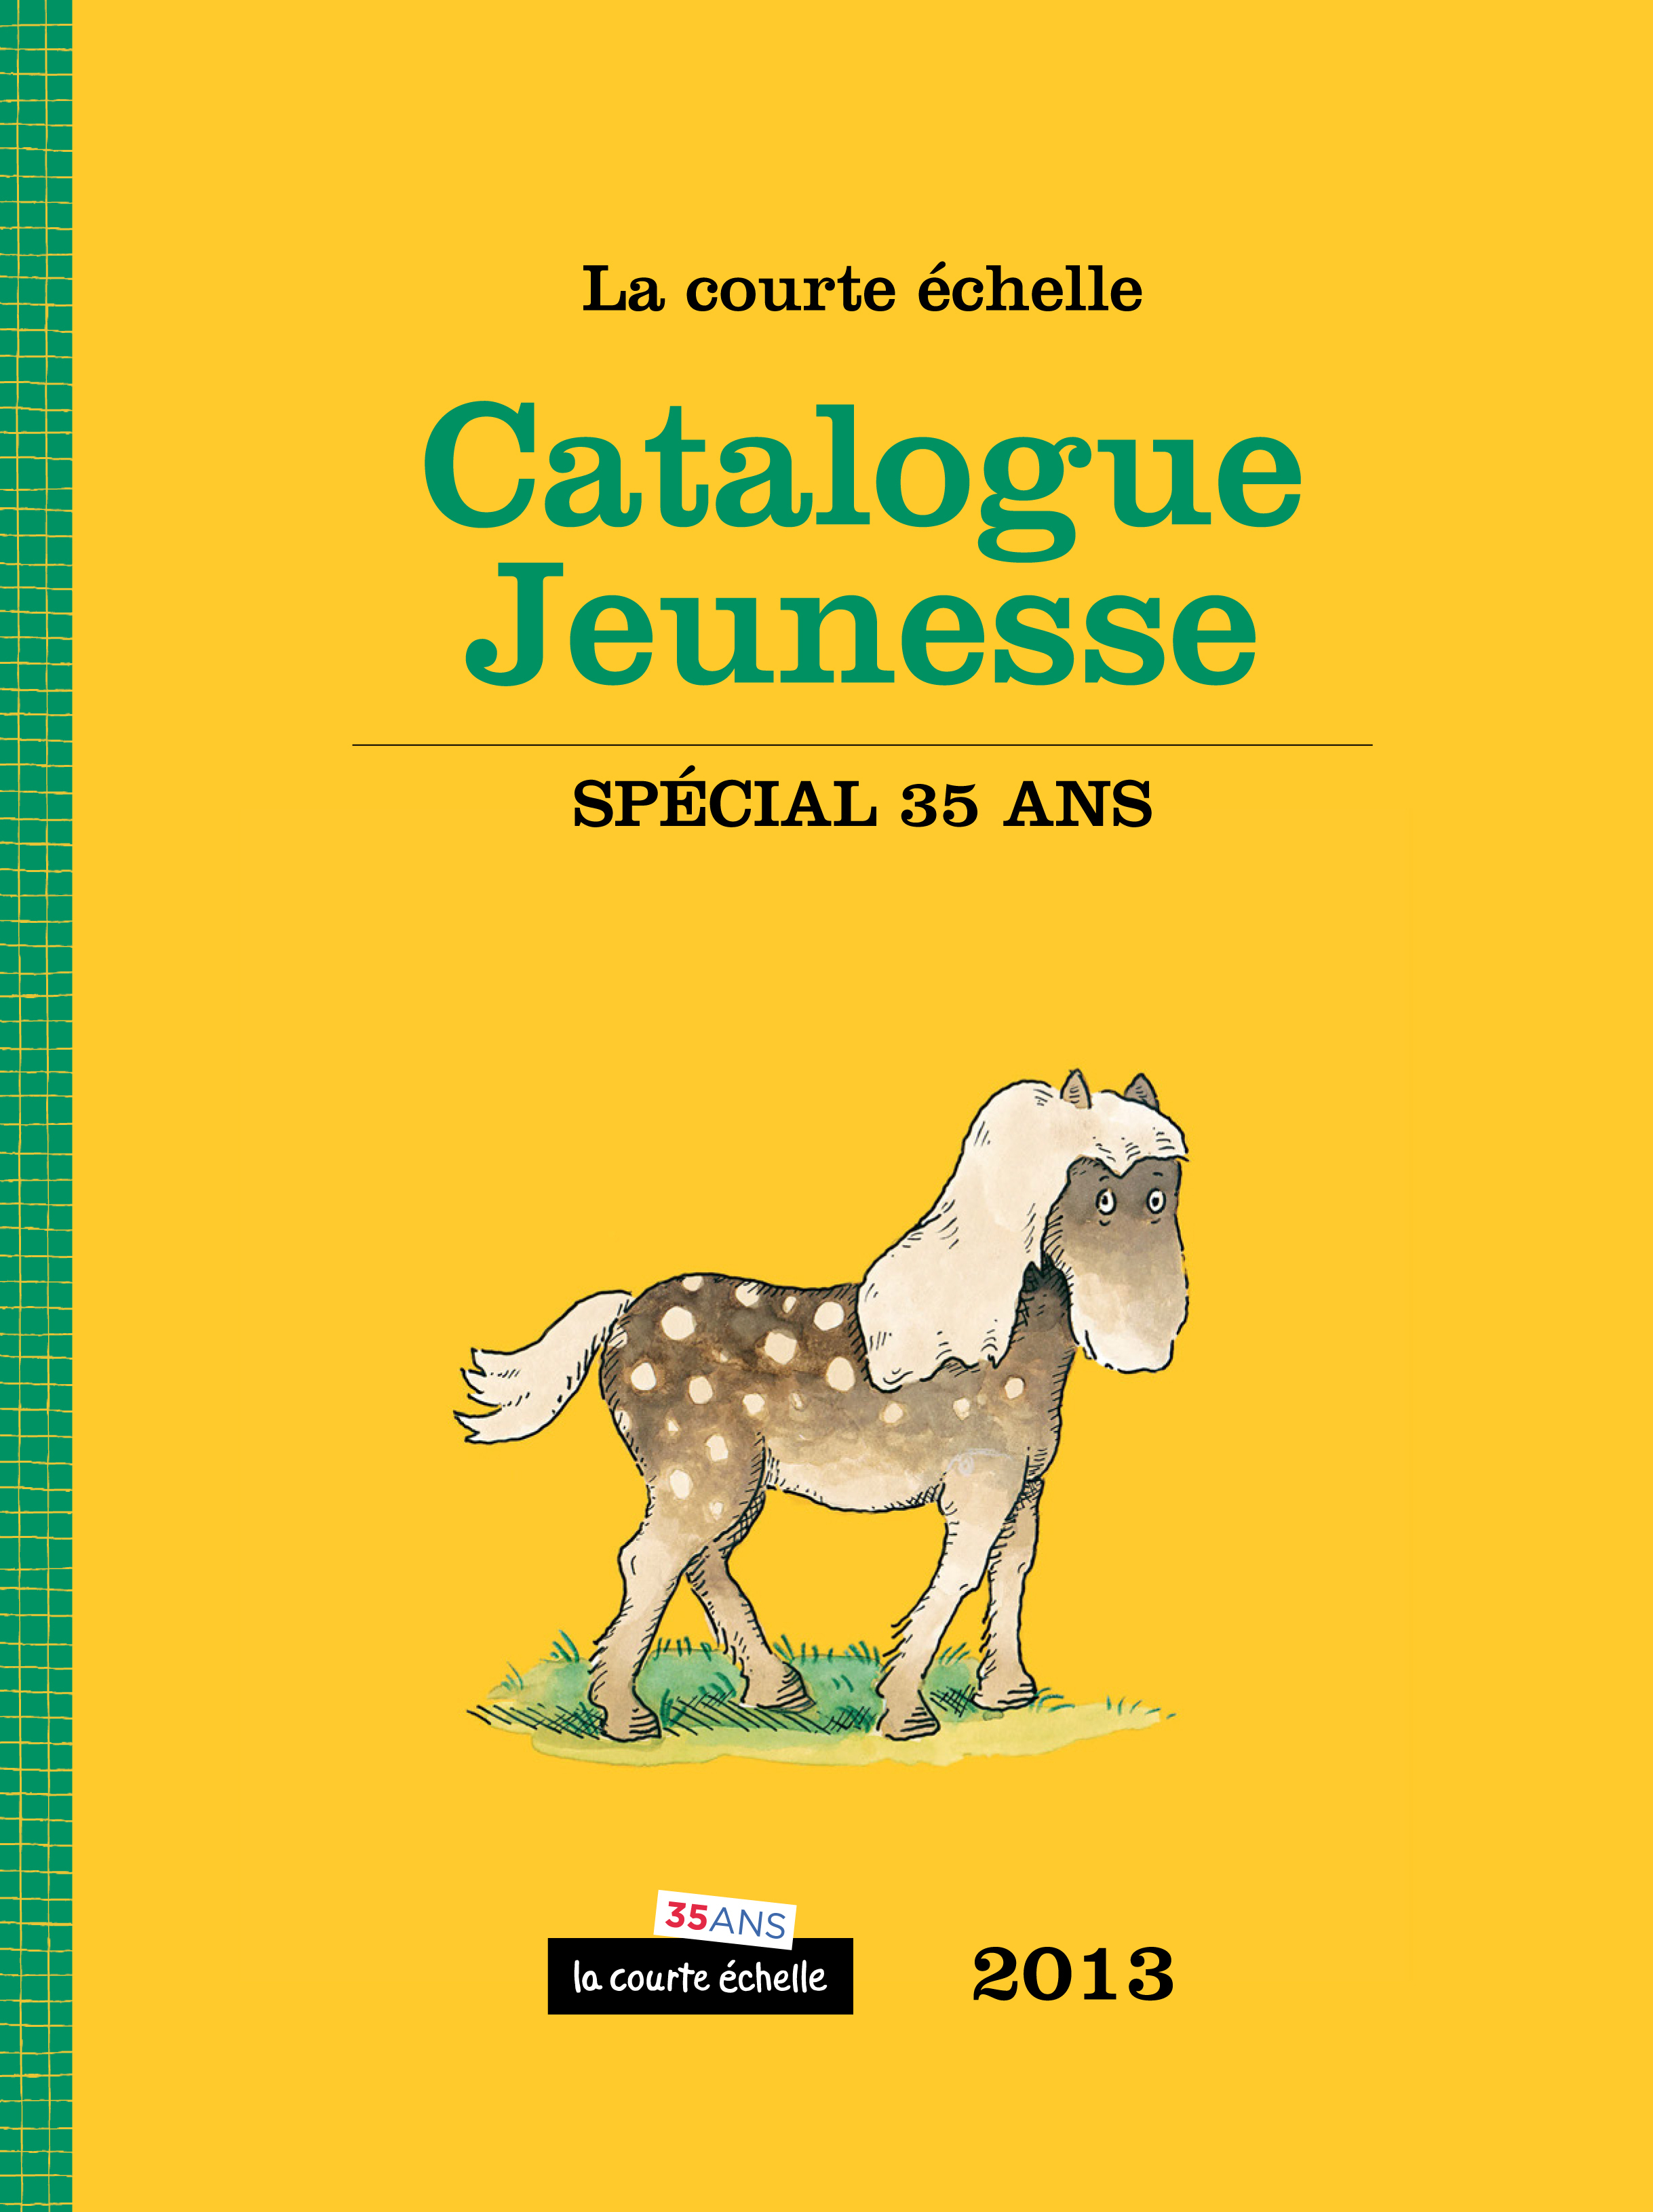 CATALOGUE JEUNESSE - SPECIAL 35 ANS